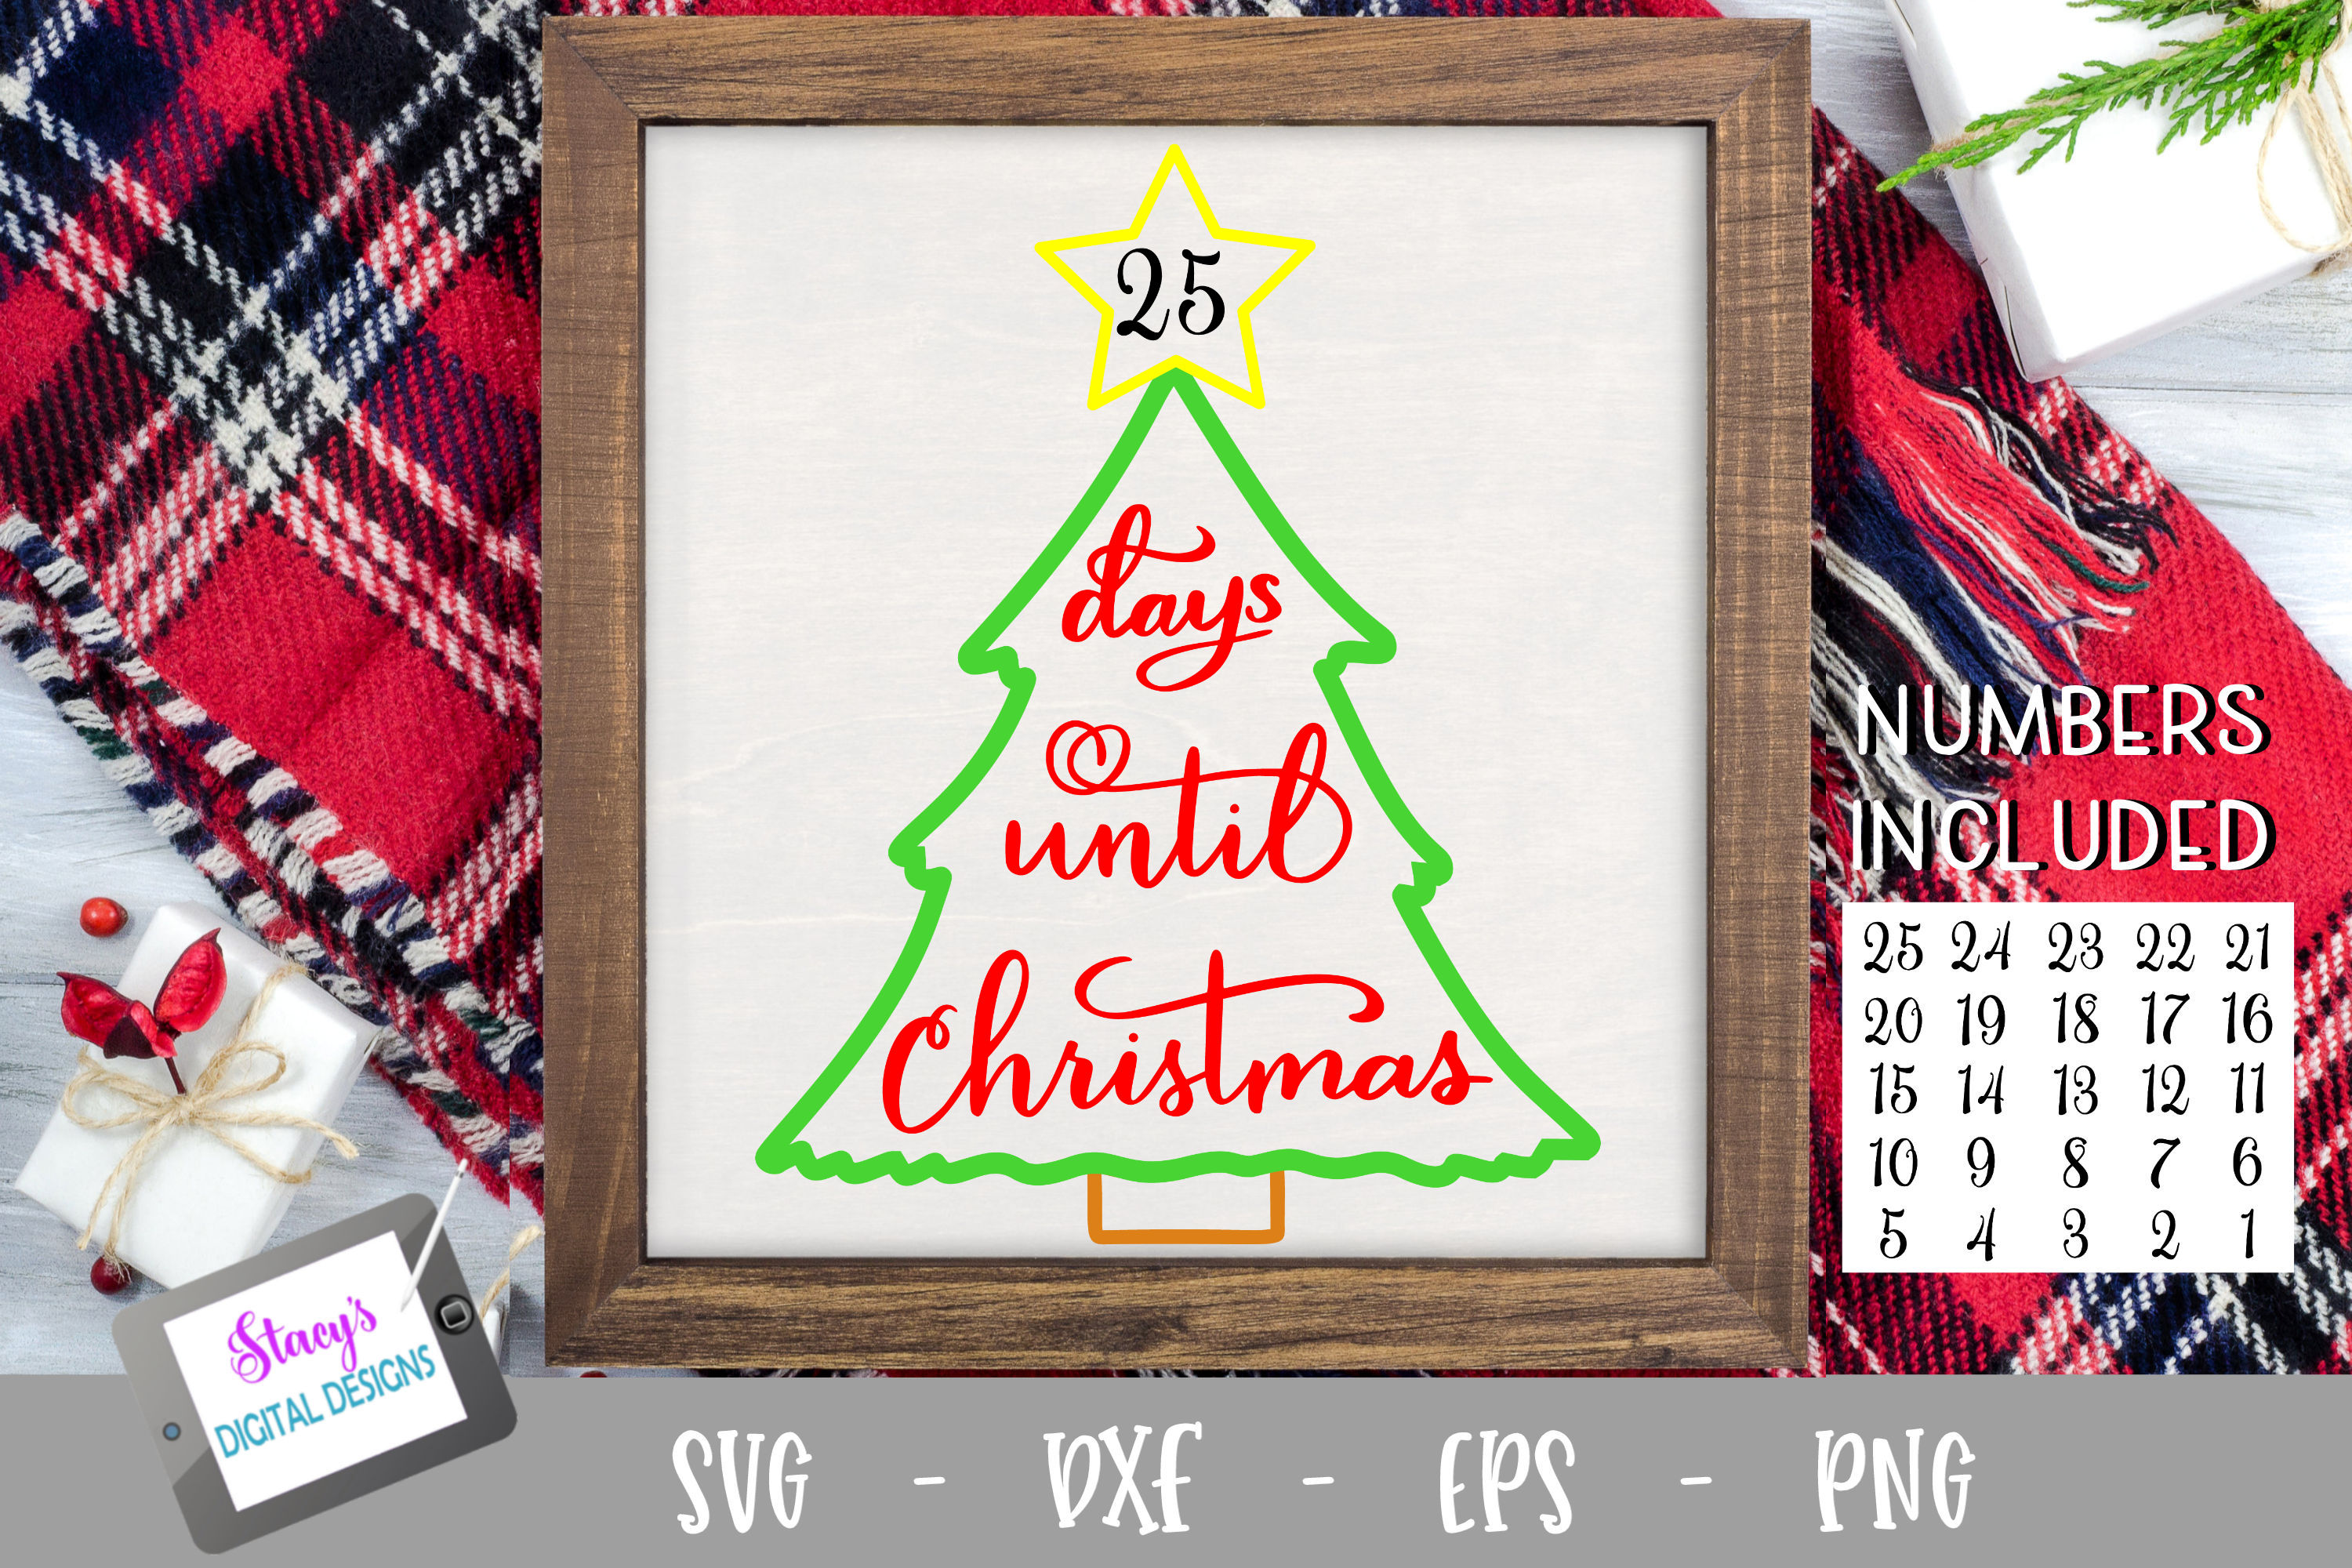 Days until Christmas SVG - Christmas Countdown - Outlines example image 1